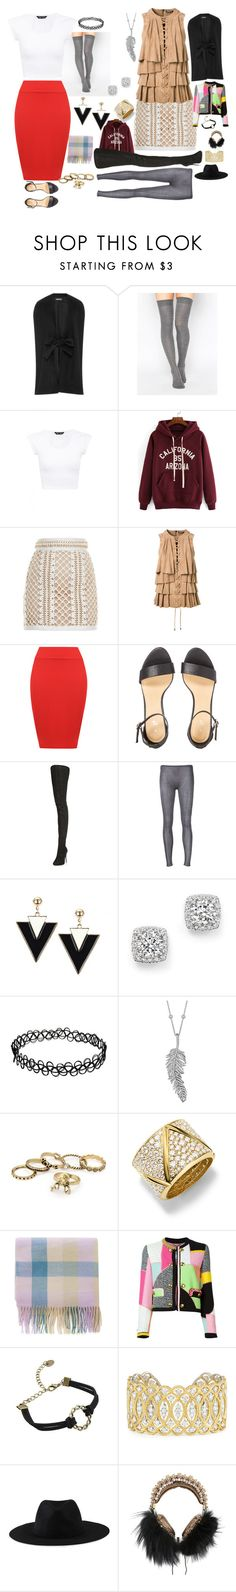 """""""Price check"""" by amanda-anda-panda ❤ liked on Polyvore featuring ASOS, Balmain, WearAll, Maison Margiela, Label Under Construction, Bloomingdale's, Penny Preville, Marina B, Moschino and Buccellati"""